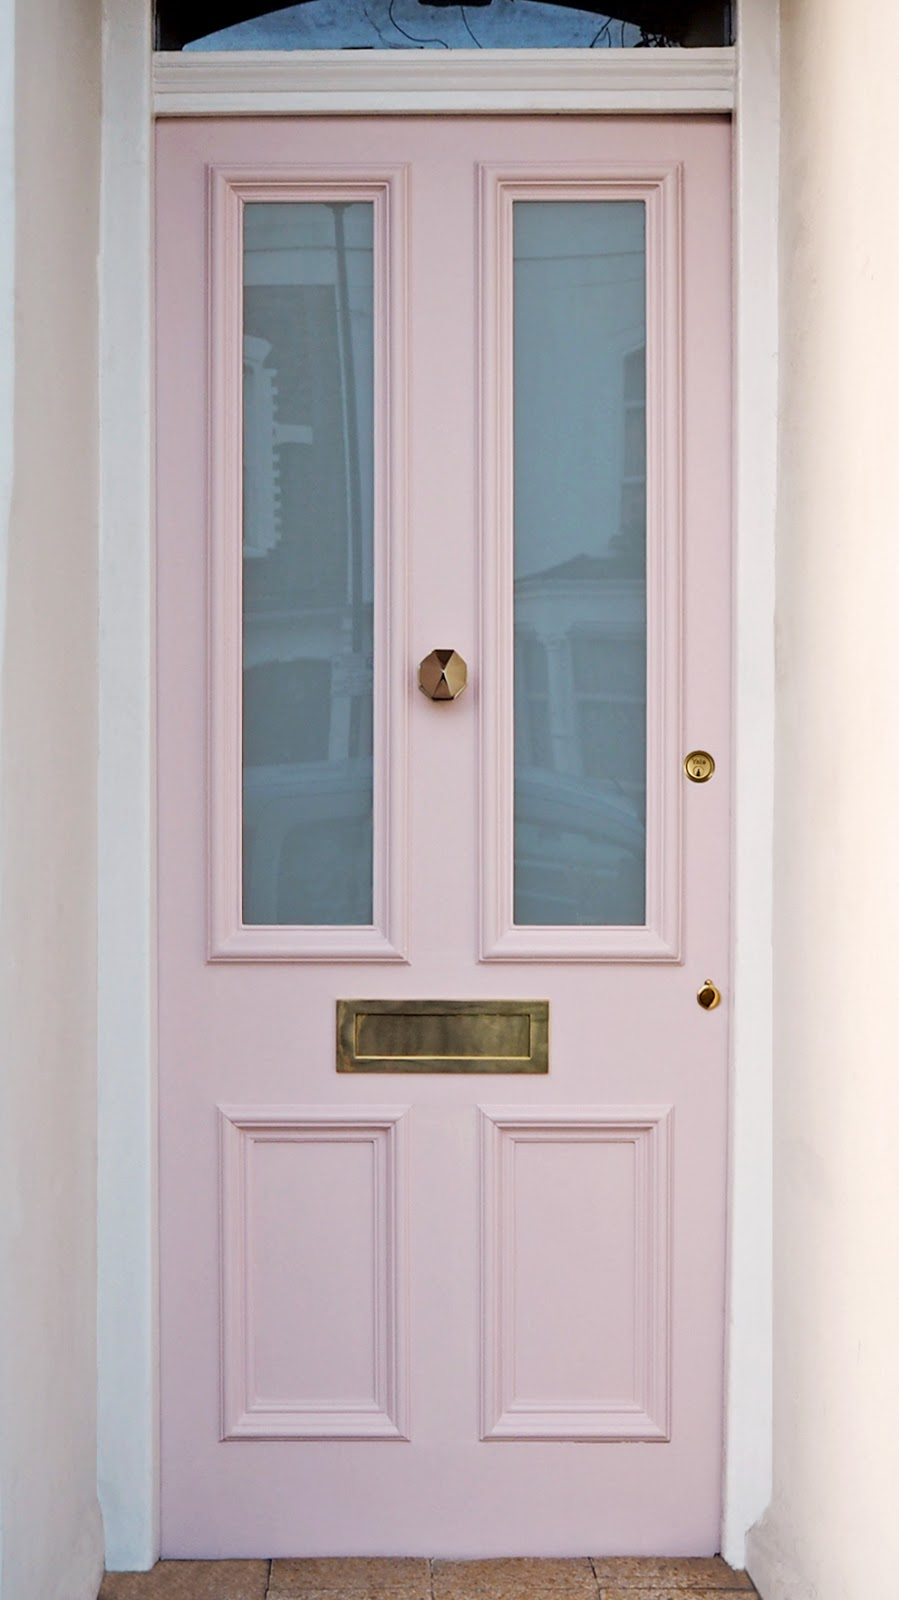 French For Pineapple Blog - Discovering Sanderson Paint - Pink Victorian Front Door painted in Pink Ash Light